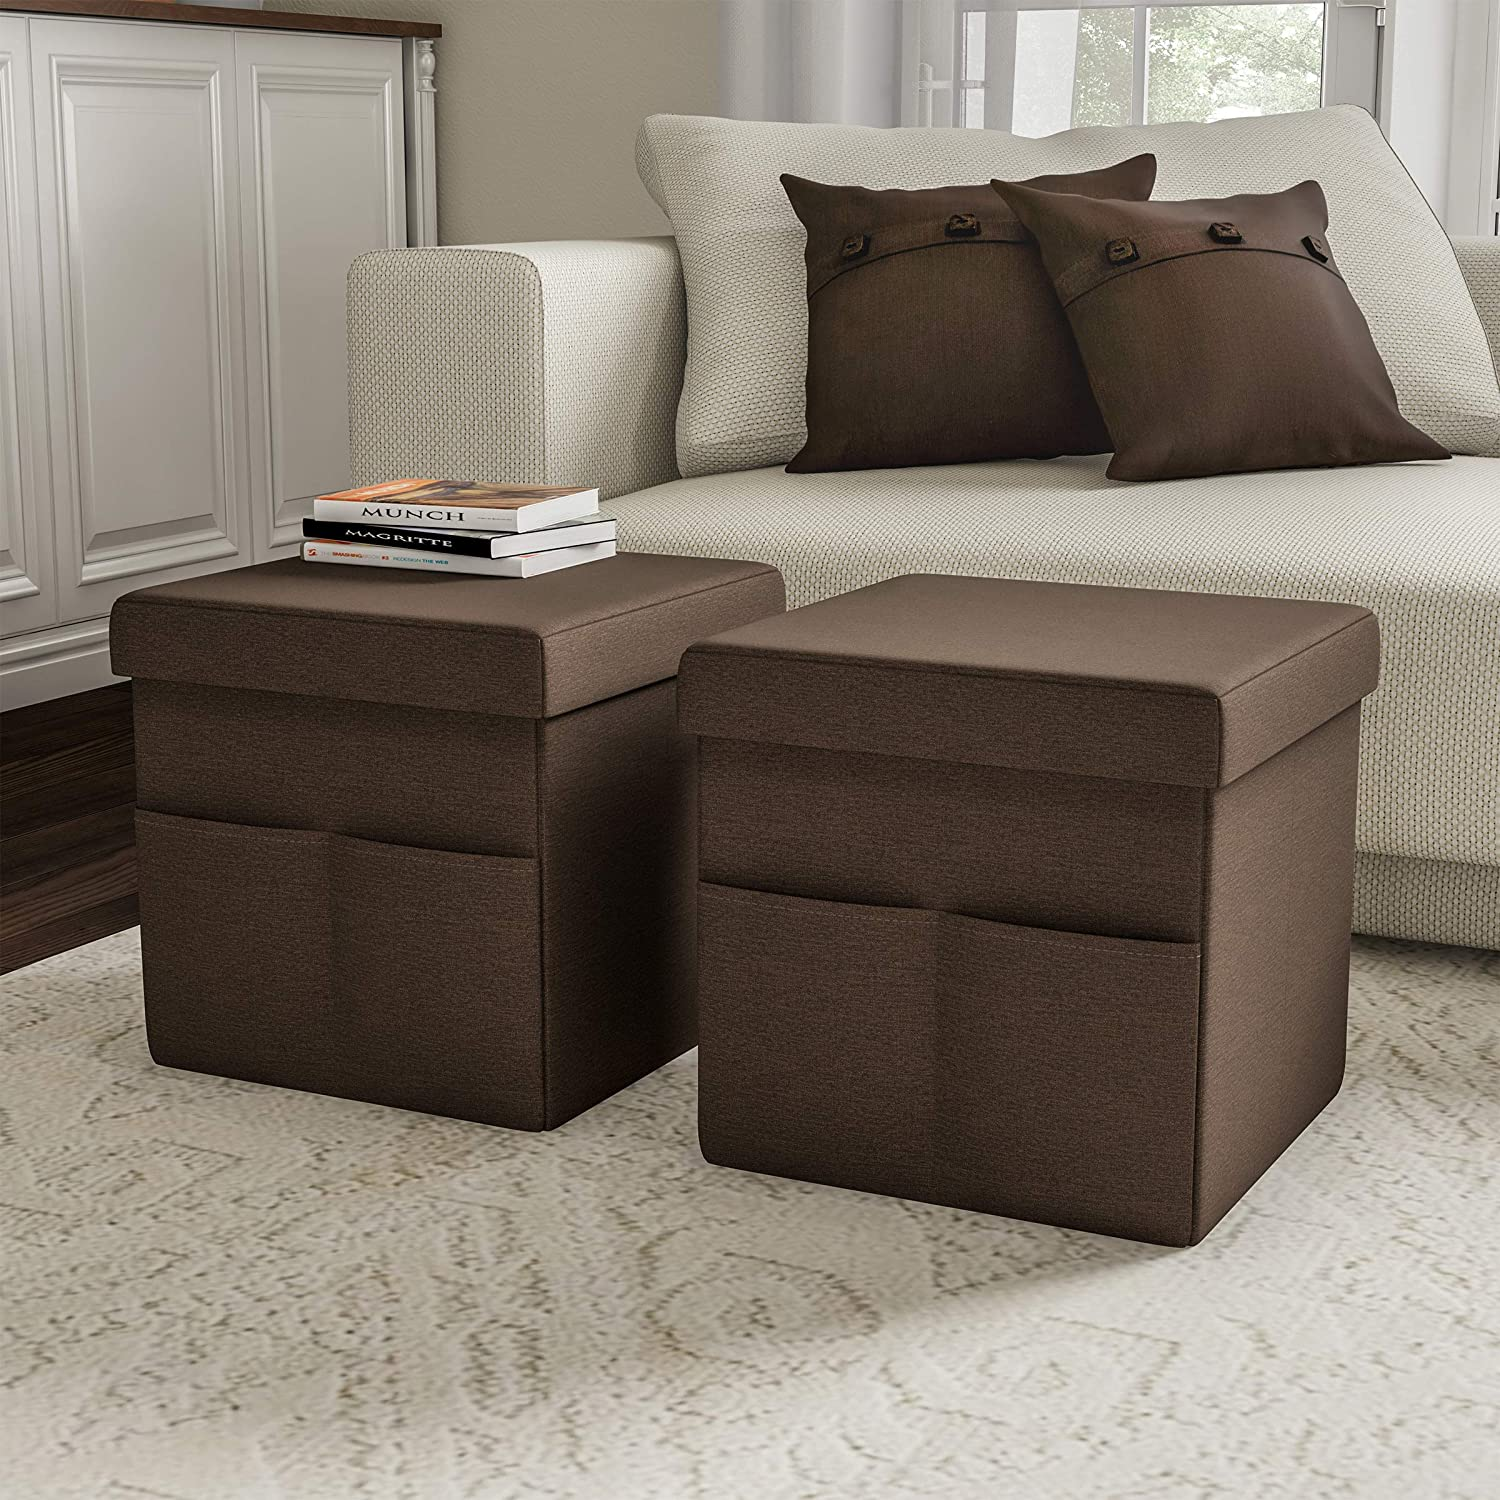 Lavish Large-scale sale Home Foldable Storage Cube Ottoman – Mu Pockets Safety and trust with